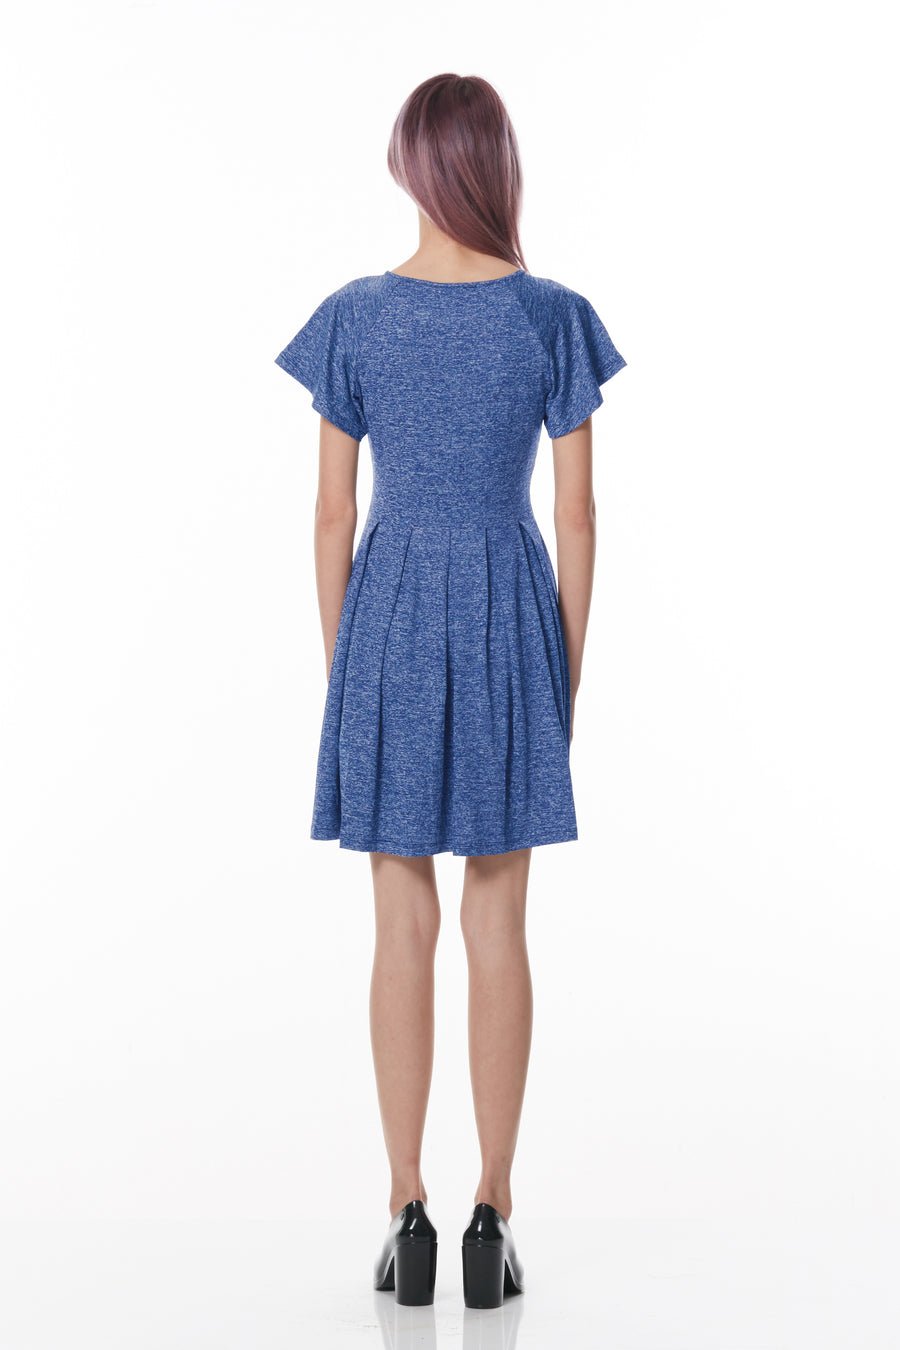 Reverse Box Pleats Dress (Blue)